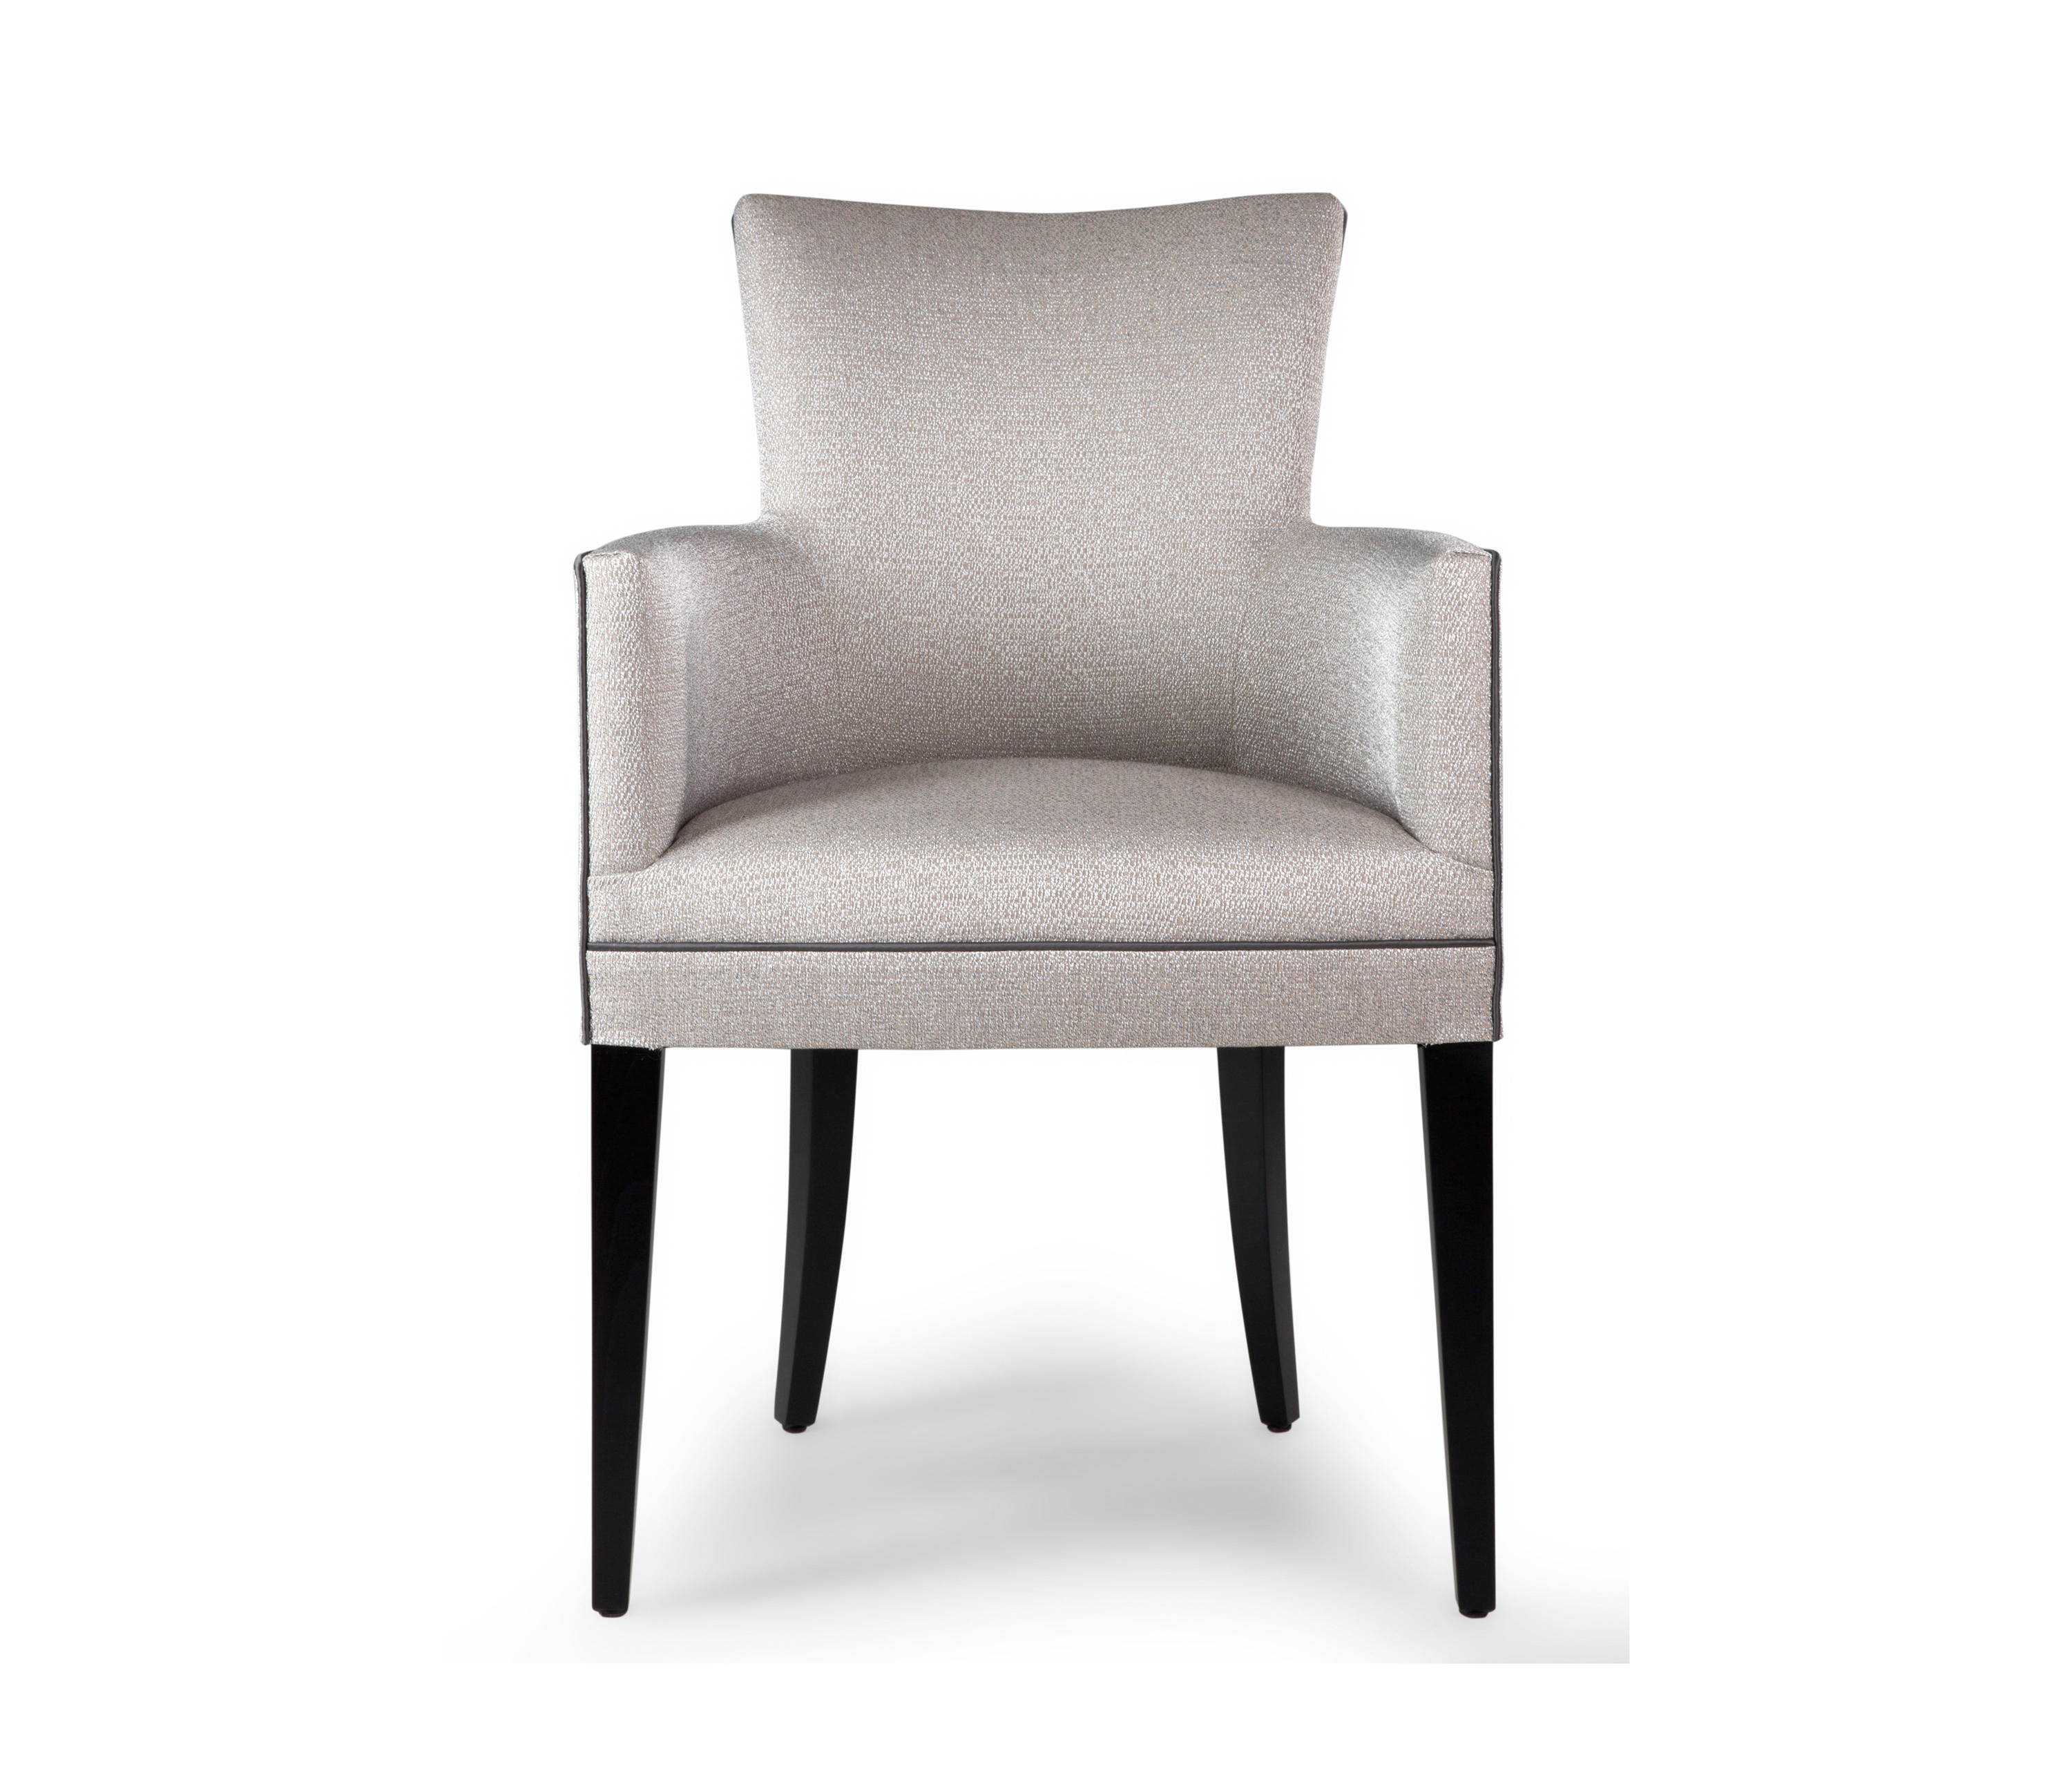 the sofa and chair company braxton reclining reviews paris carver restaurant chairs from